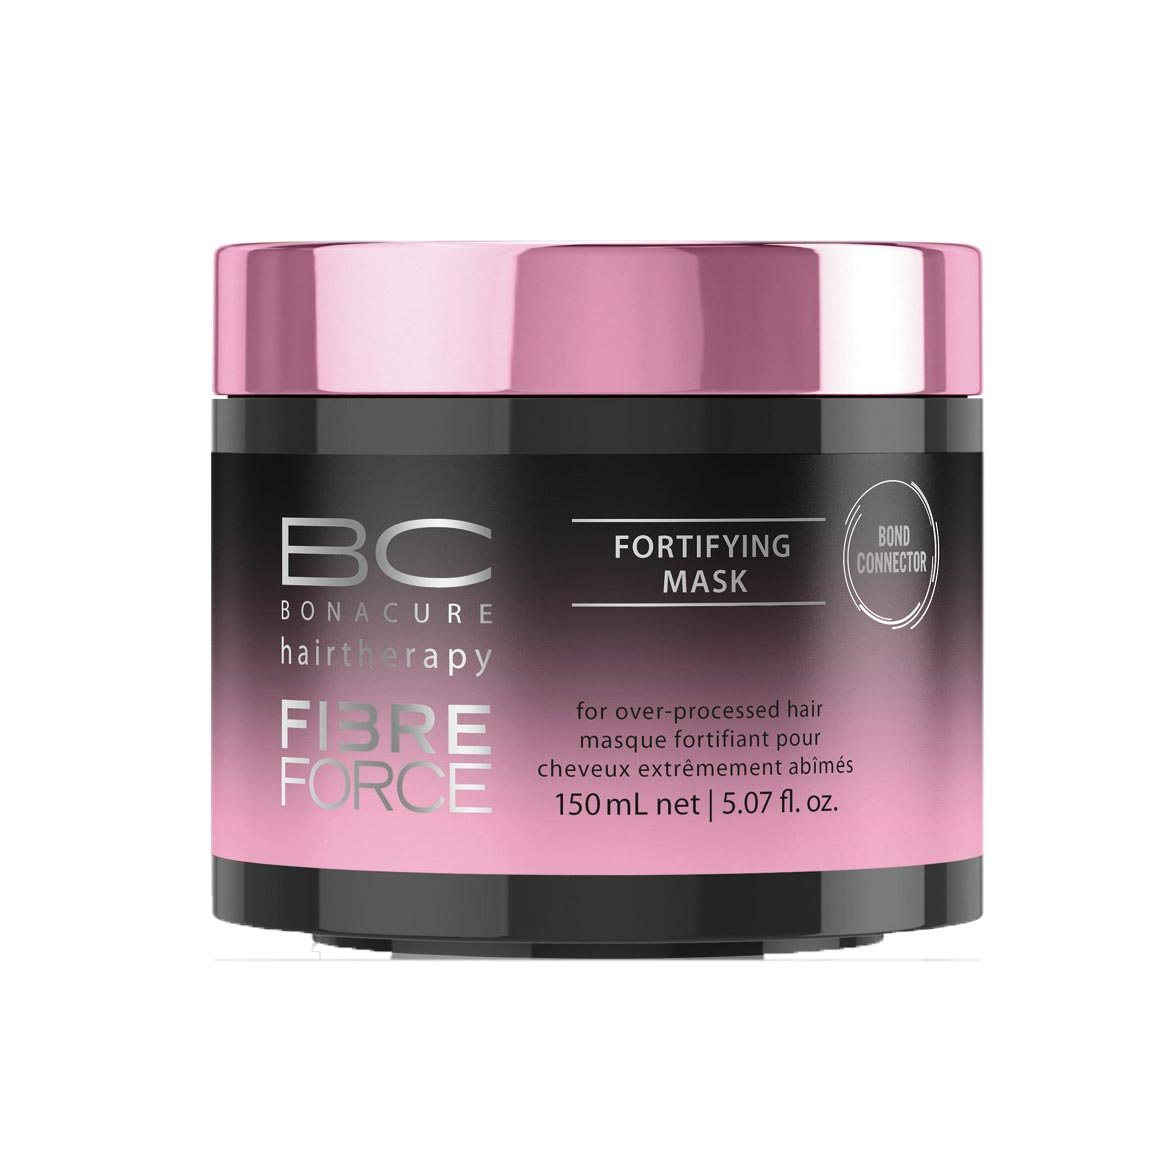 BC Bonacure FIBRE FORCE Fortifying Mask, 5.07-Ounce 2176409